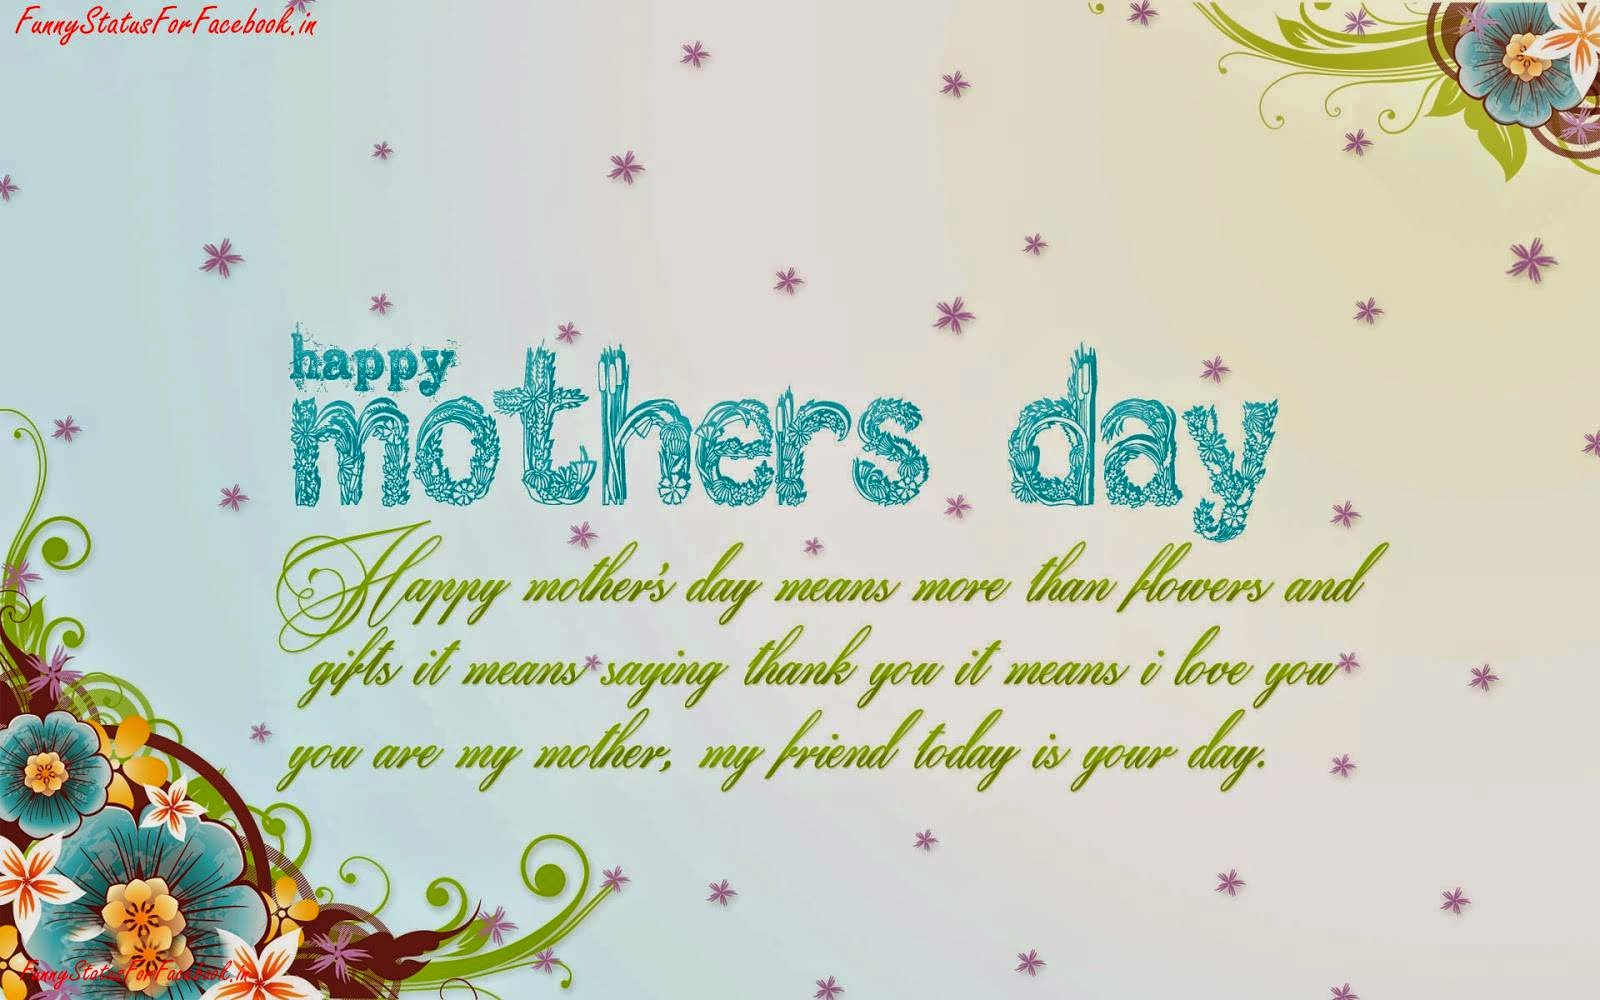 Unique mothers day wallpapers 2018 hd free download for desktop mothers day wallpapers 2017 hd free download for desktop with quotes messages kristyandbryce Gallery